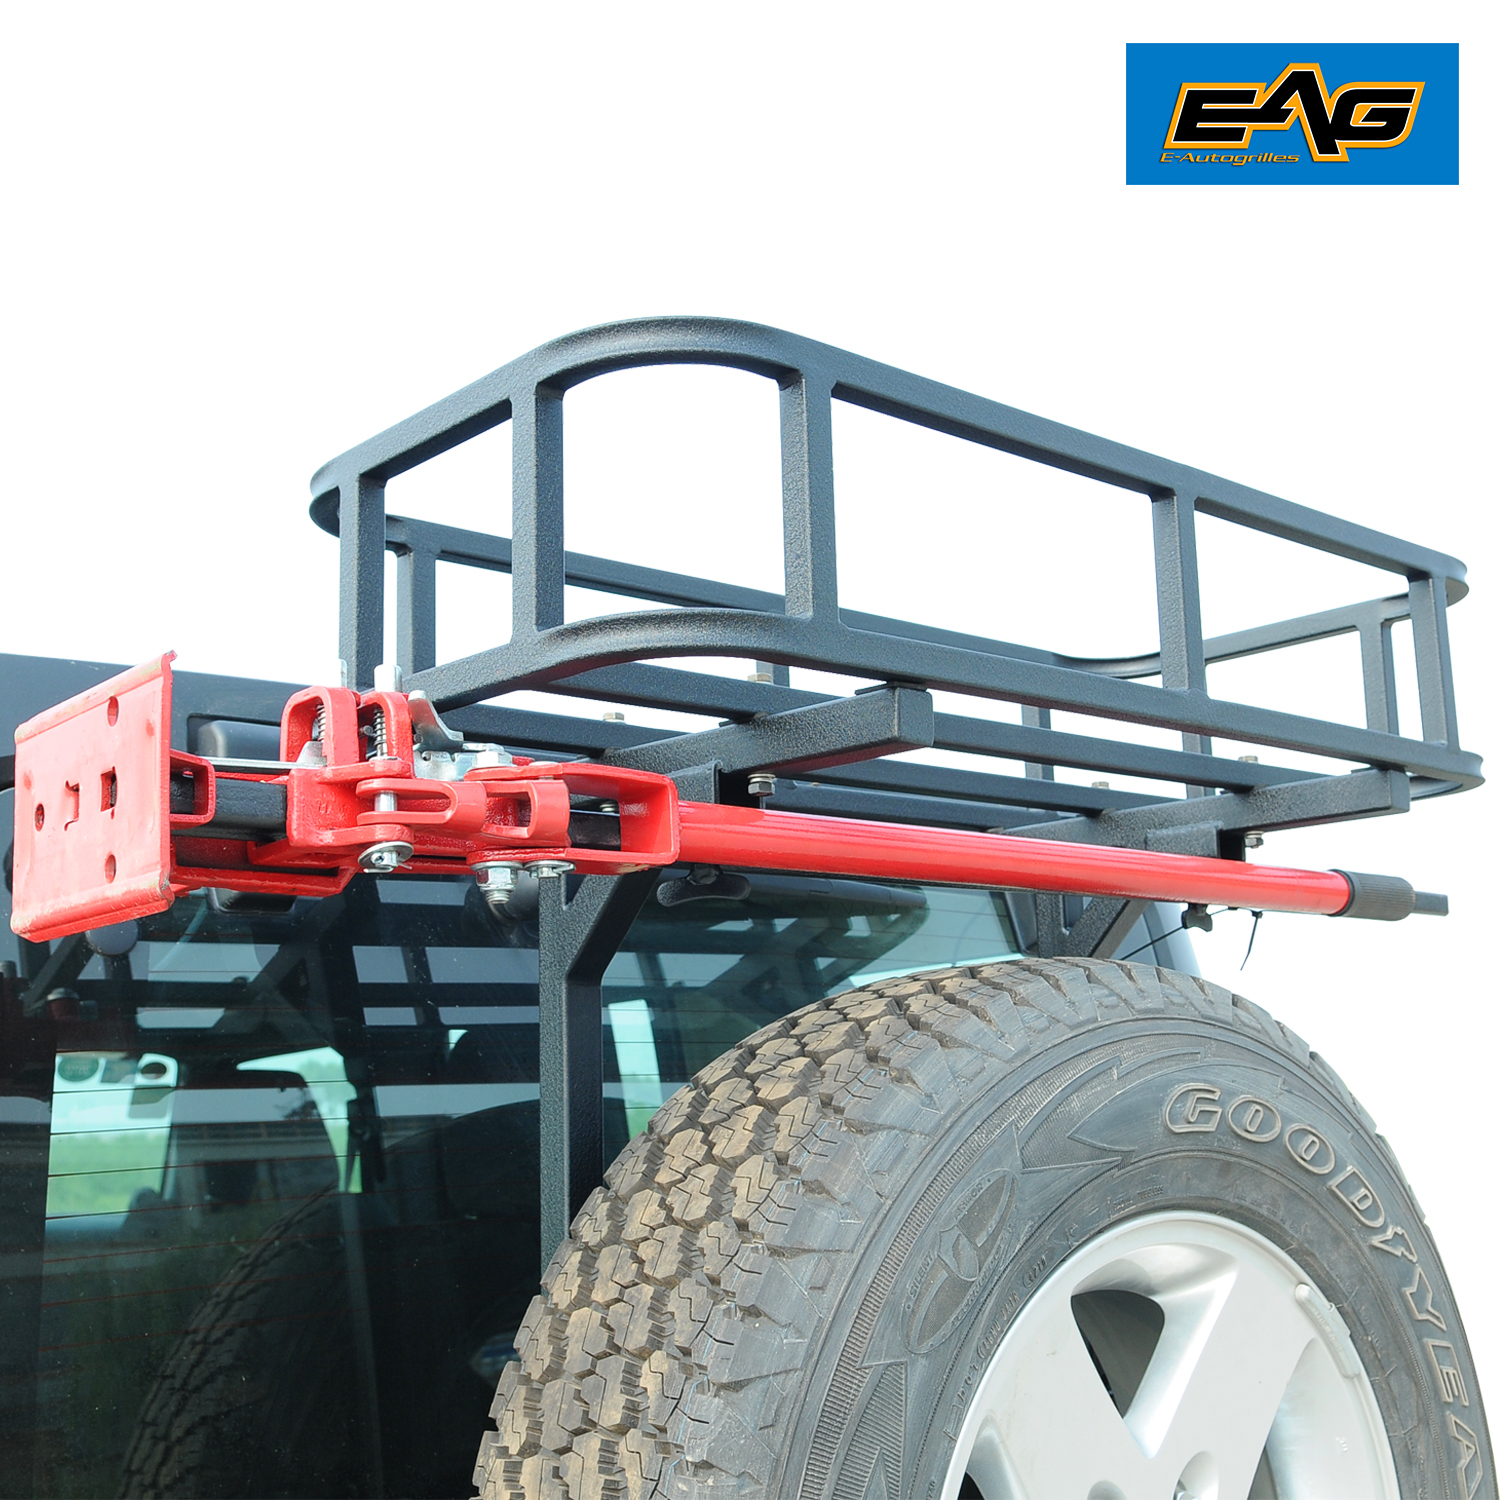 Jeep Cargo Basket: Black Rear Cargo Basket+Rear Bumper With Tire Carrier For